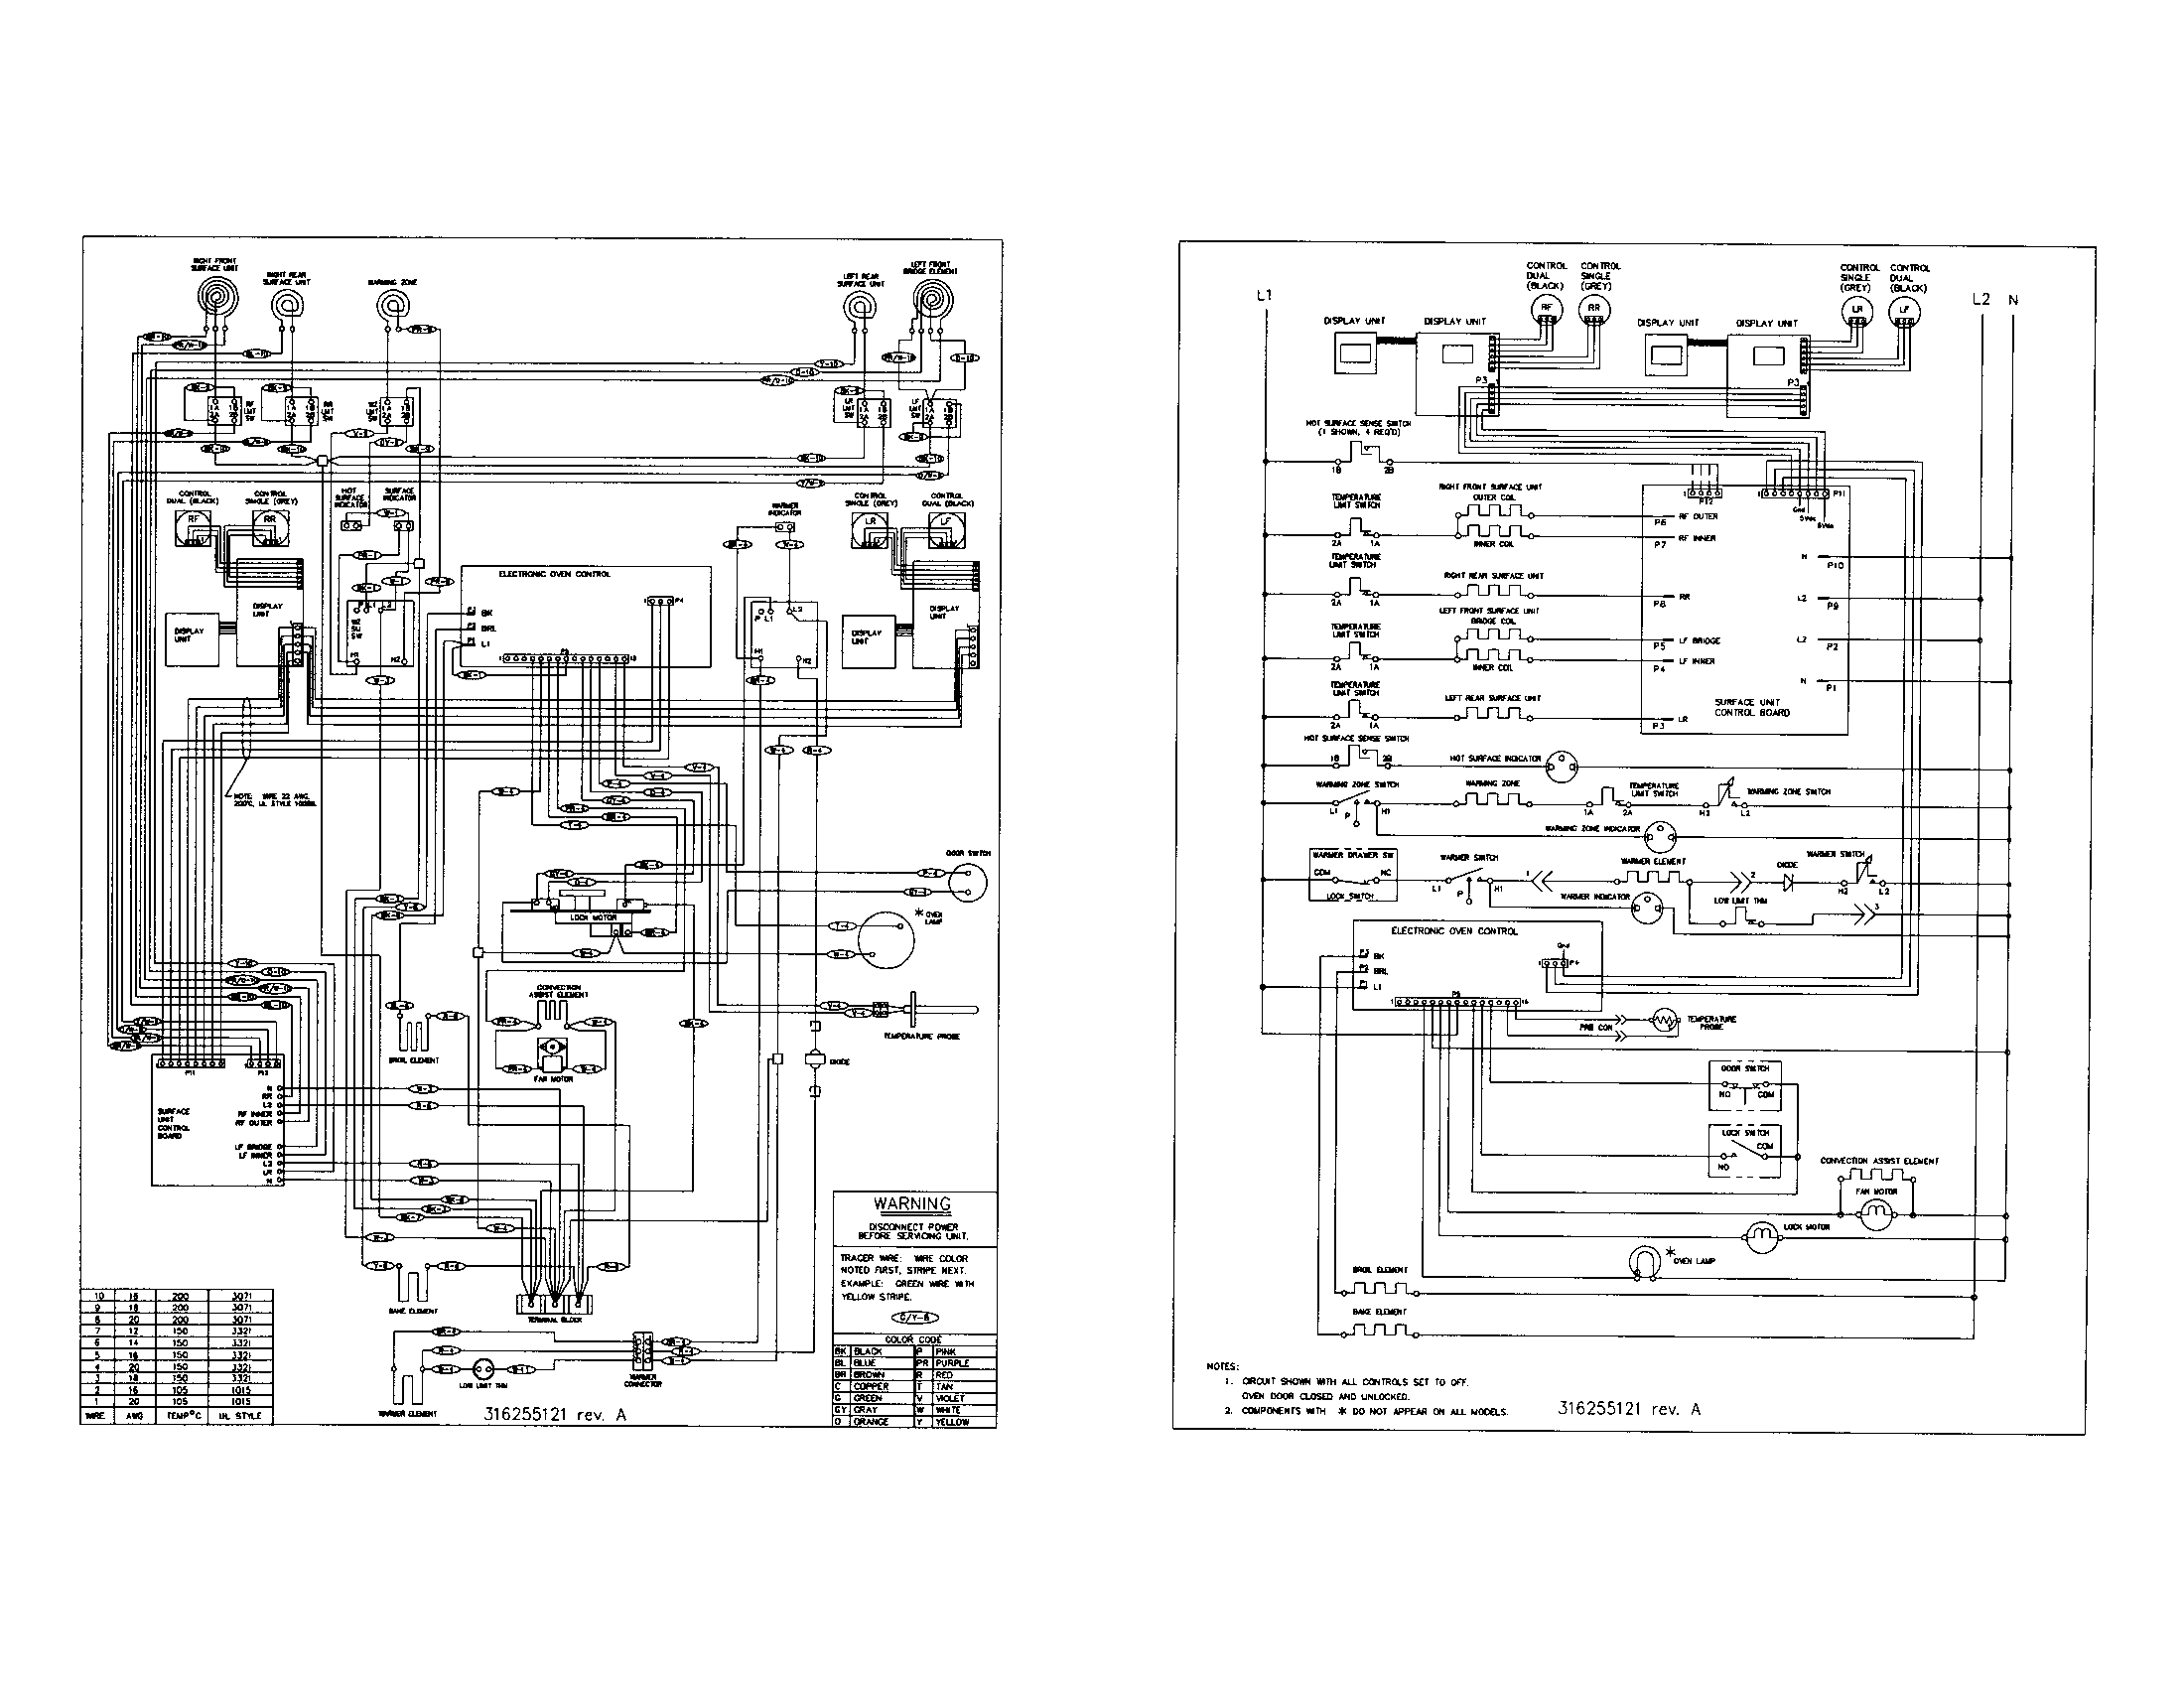 Frigidaire Wiring Diagram: Wiring Diagram For Frigidaire Refrigerator u2013 readingrat.net,Design